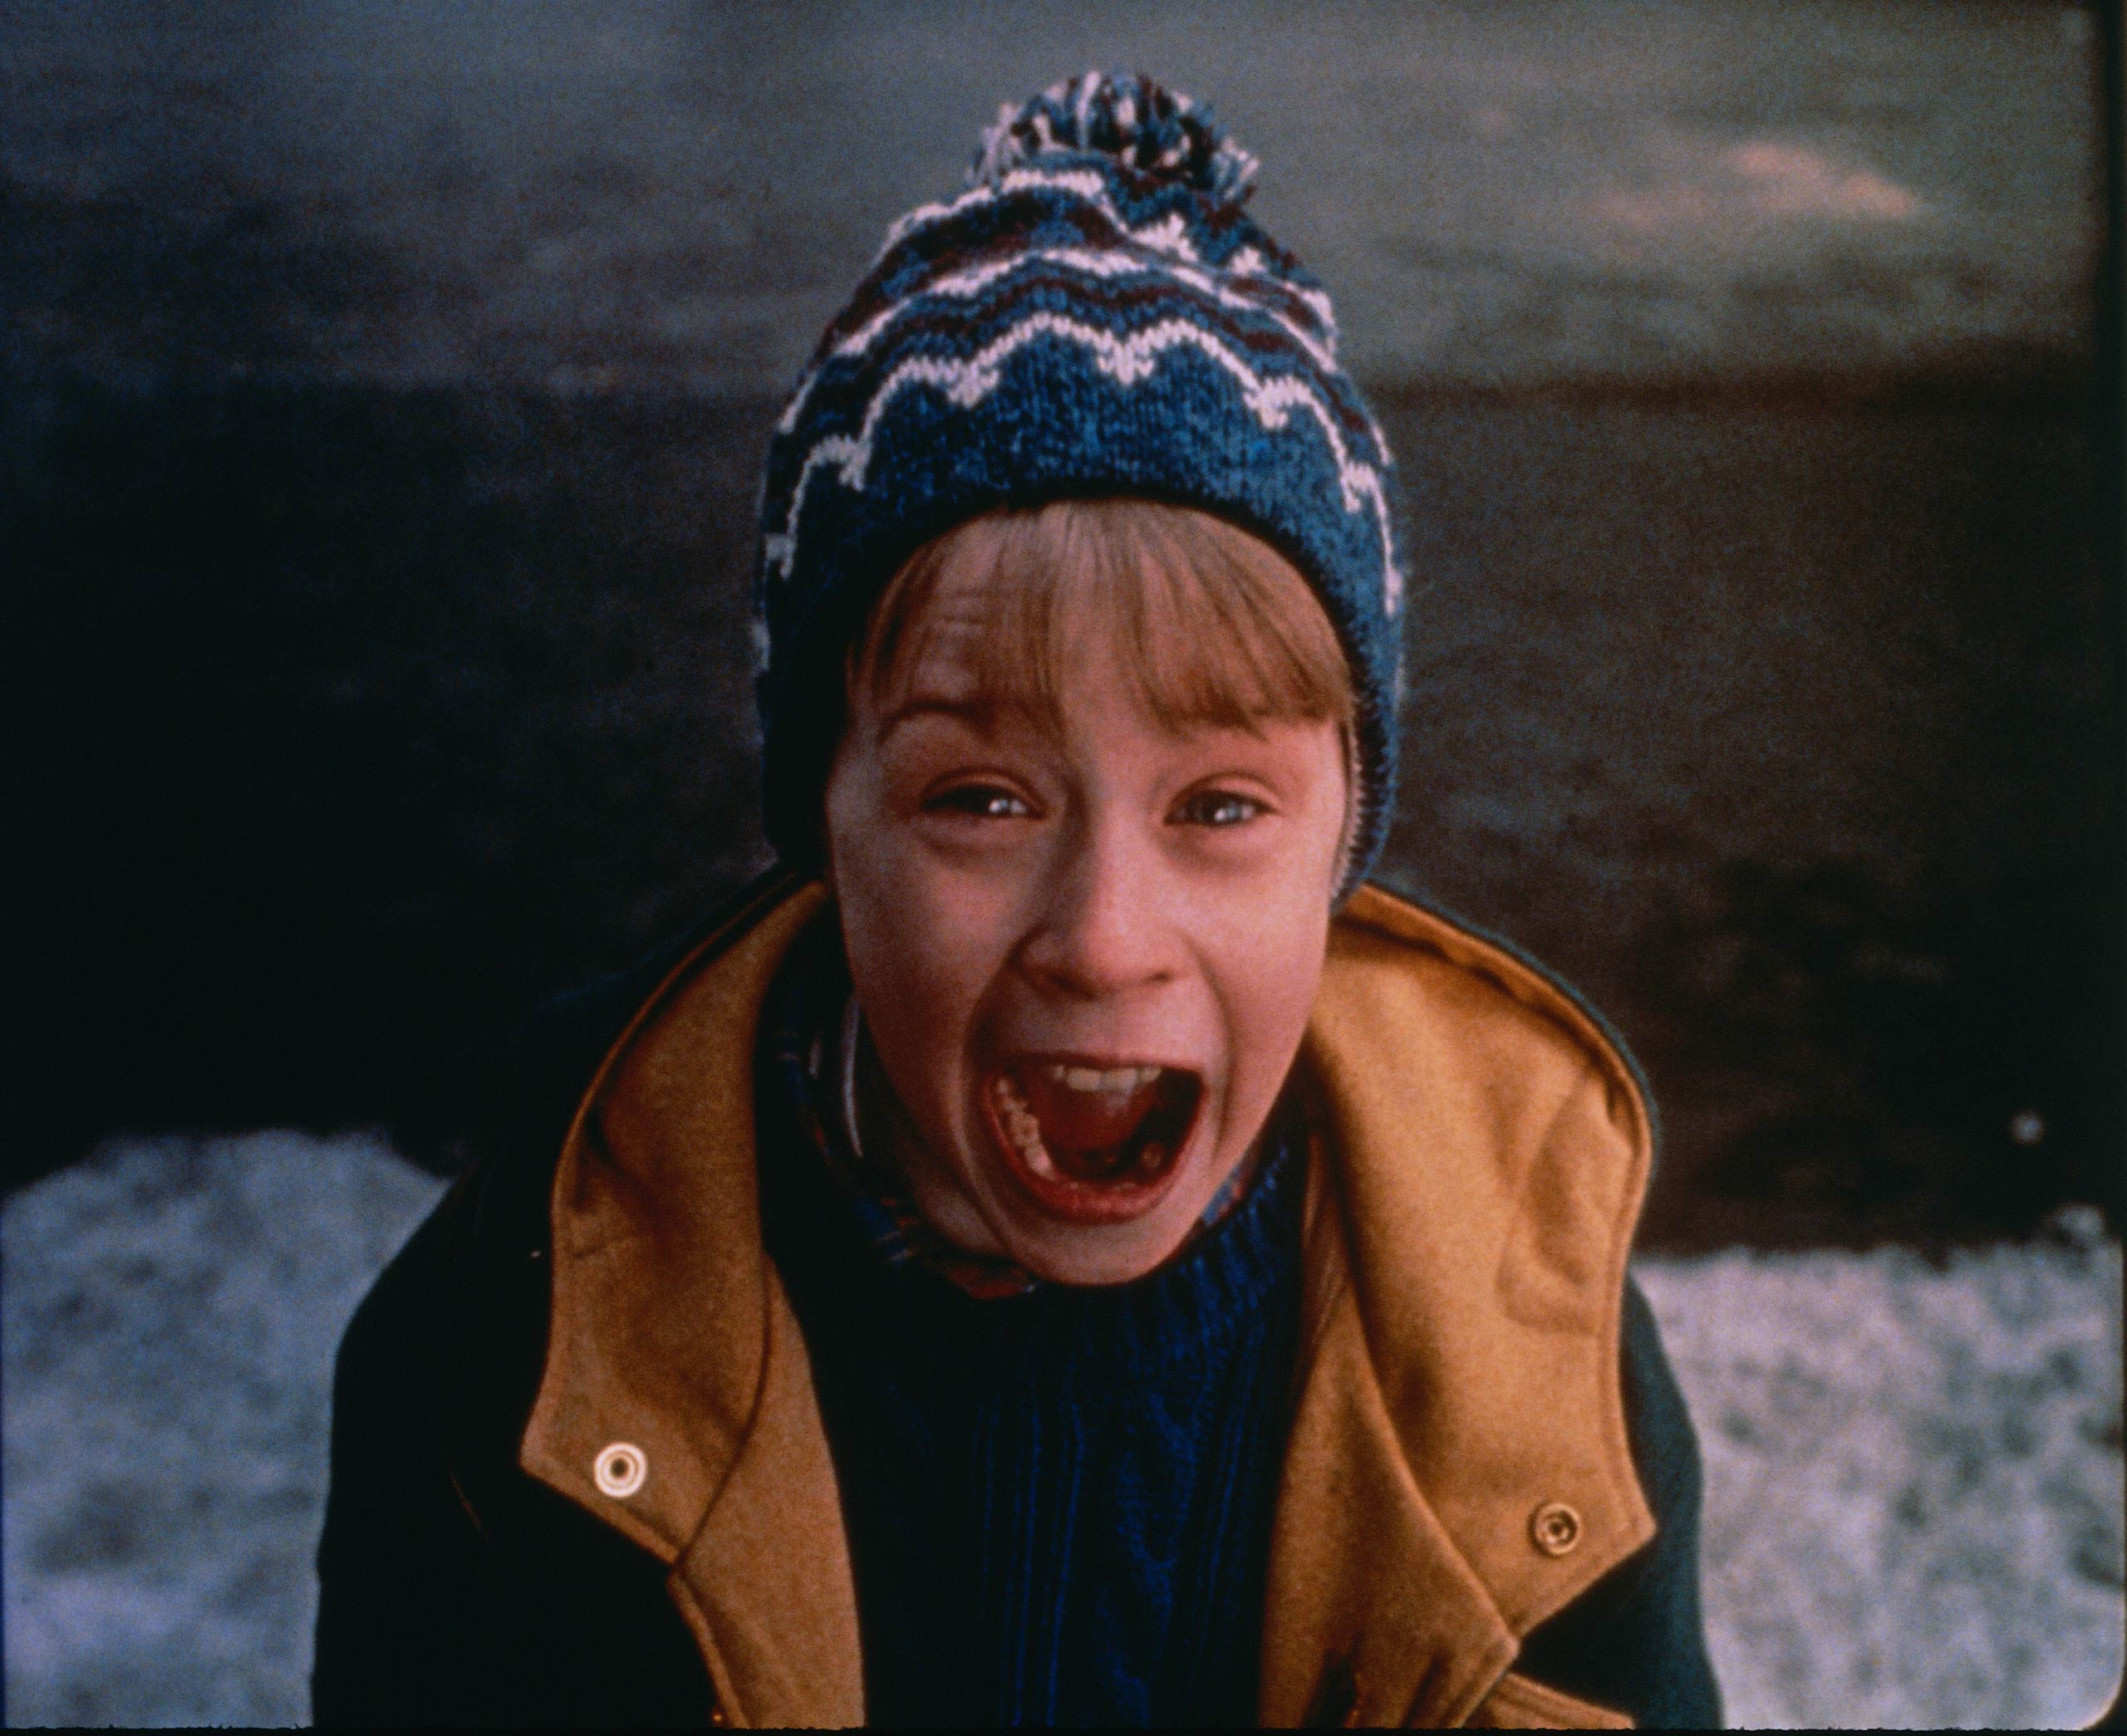 <strong><i>Home Alone 2: Lost in New York</i></strong> This 1992 sequel once again follows youngster Kevin McCallister (Macaulay Culkin) as he faces off against two criminals — but instead of his home in suburban Chicago, this time he's in the Big Apple.